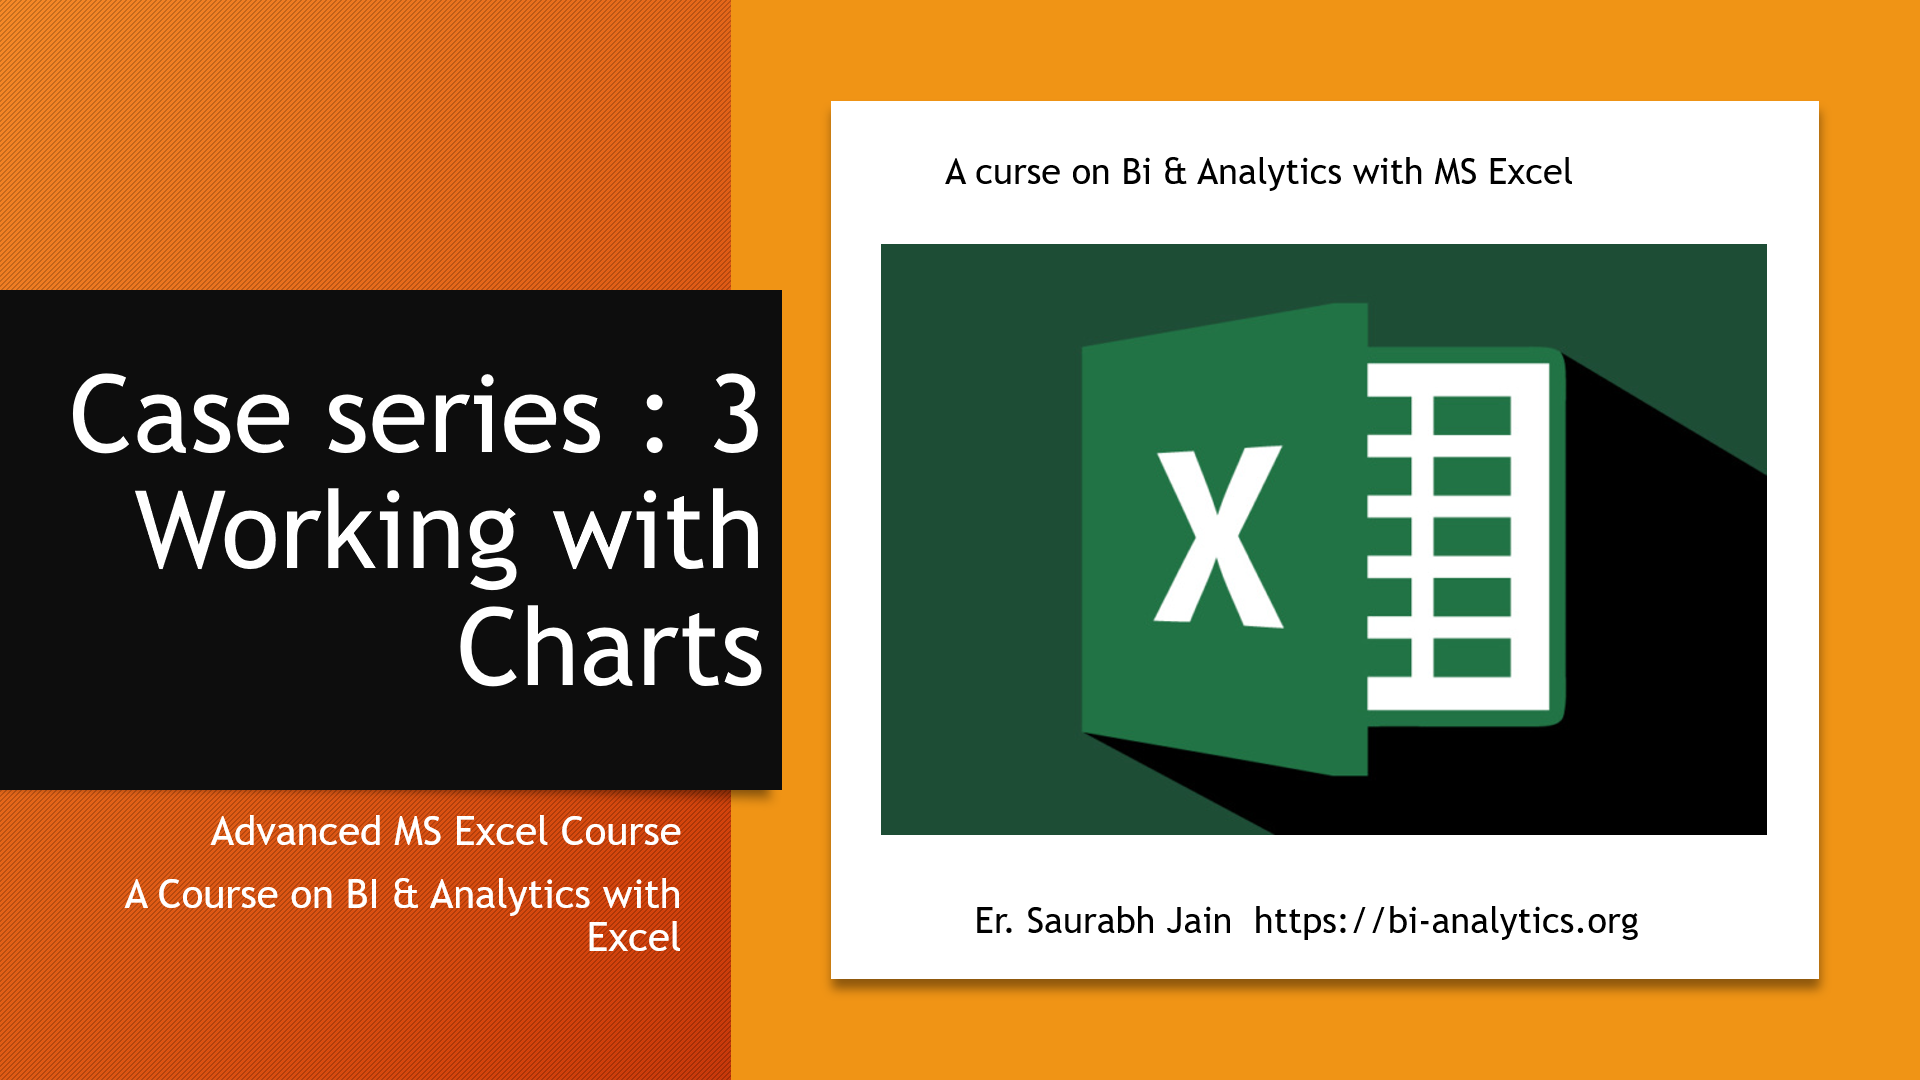 Case Series 3 : Working with Charts : Free Advanced MS Excel Course